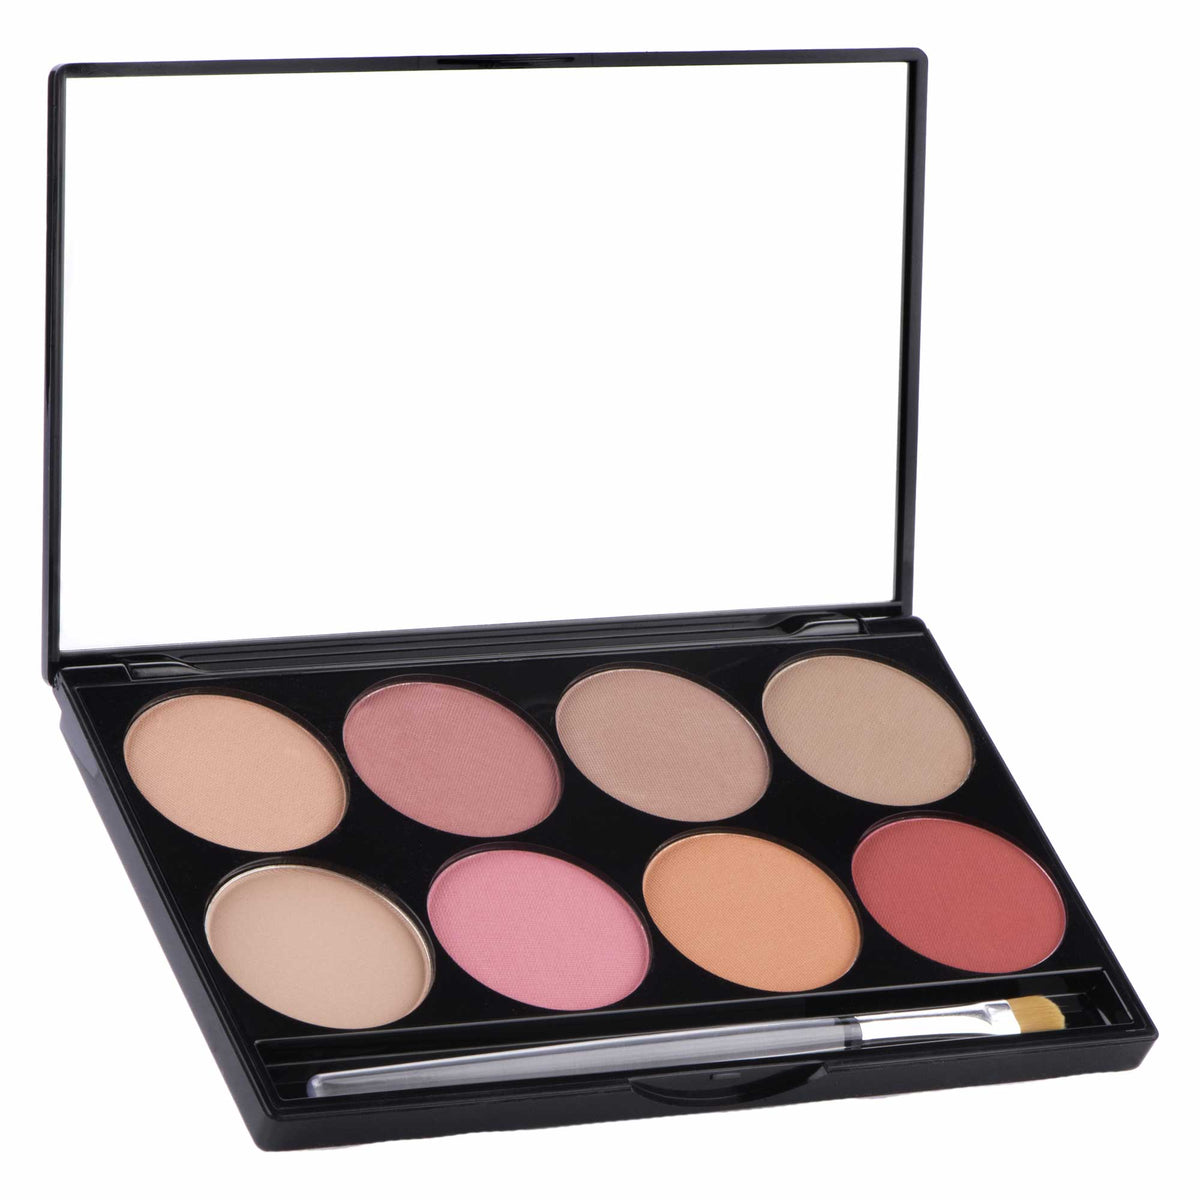 Mehron CHEEK Powder 8 Palette - Blush & Contour